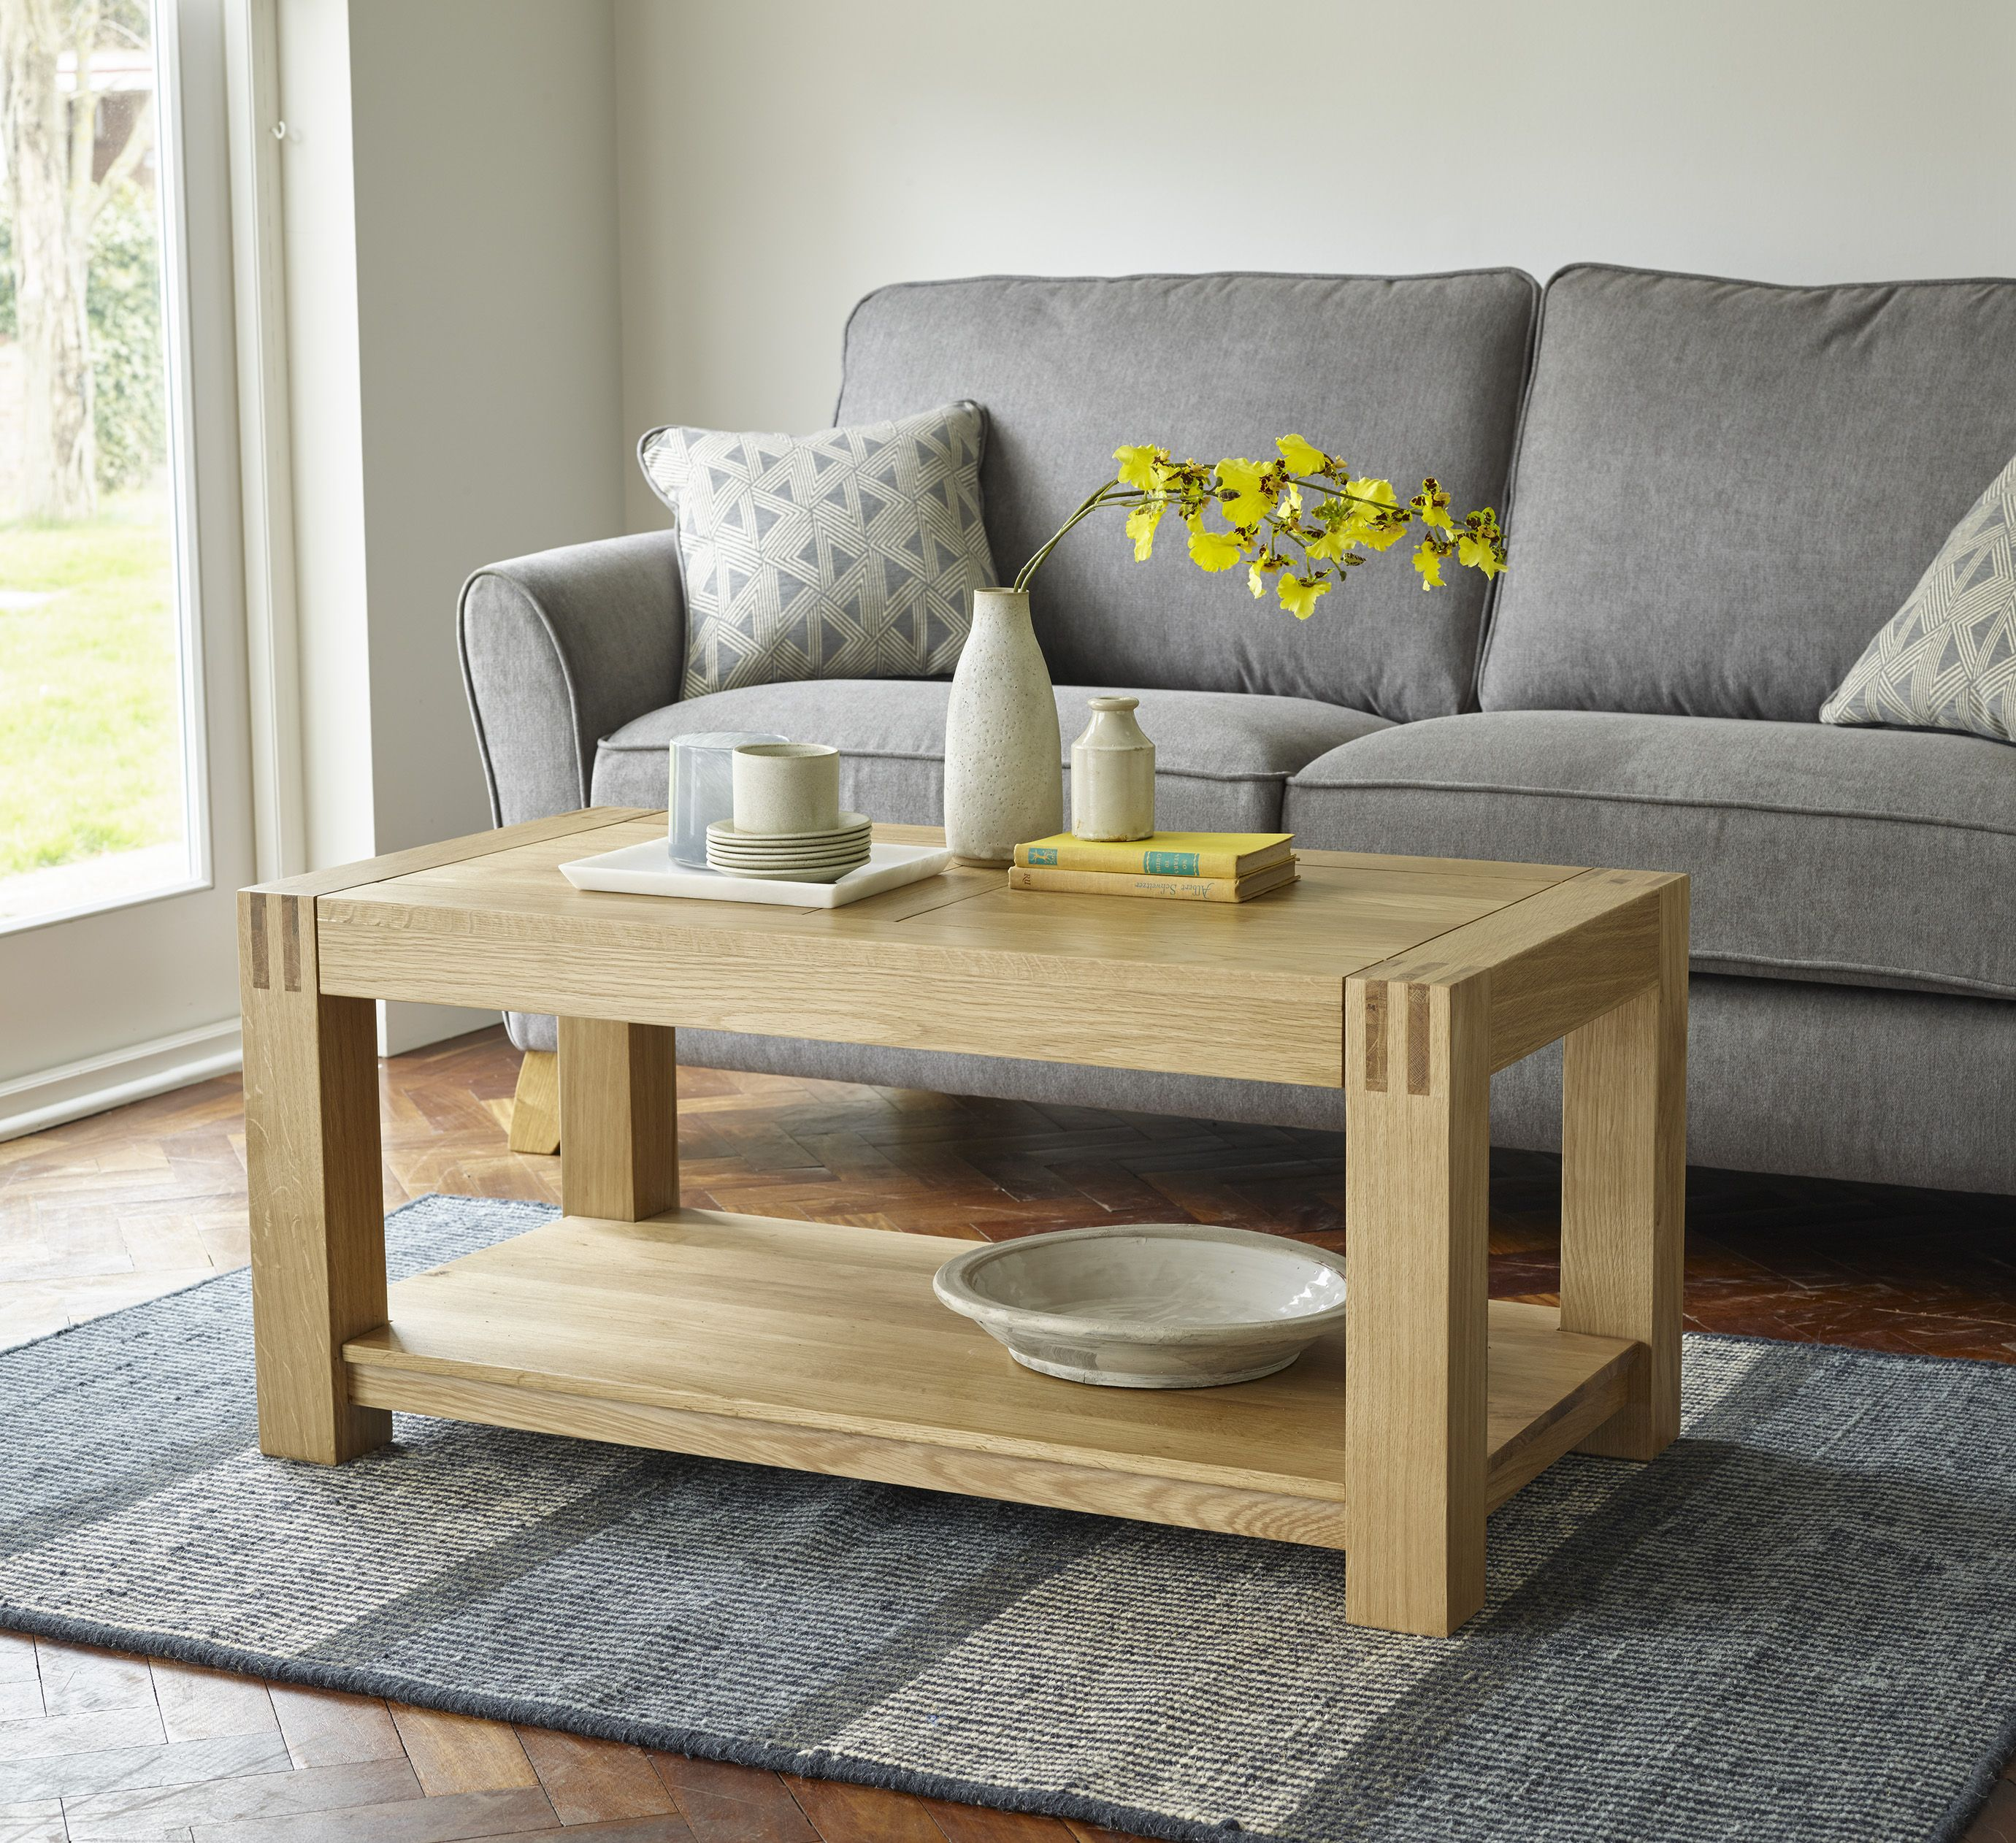 Olwen Oak Coffee Table Coffee Table For Small Living Room Coffee Table Small Space Oak Coffee Table [ 2000 x 1356 Pixel ]